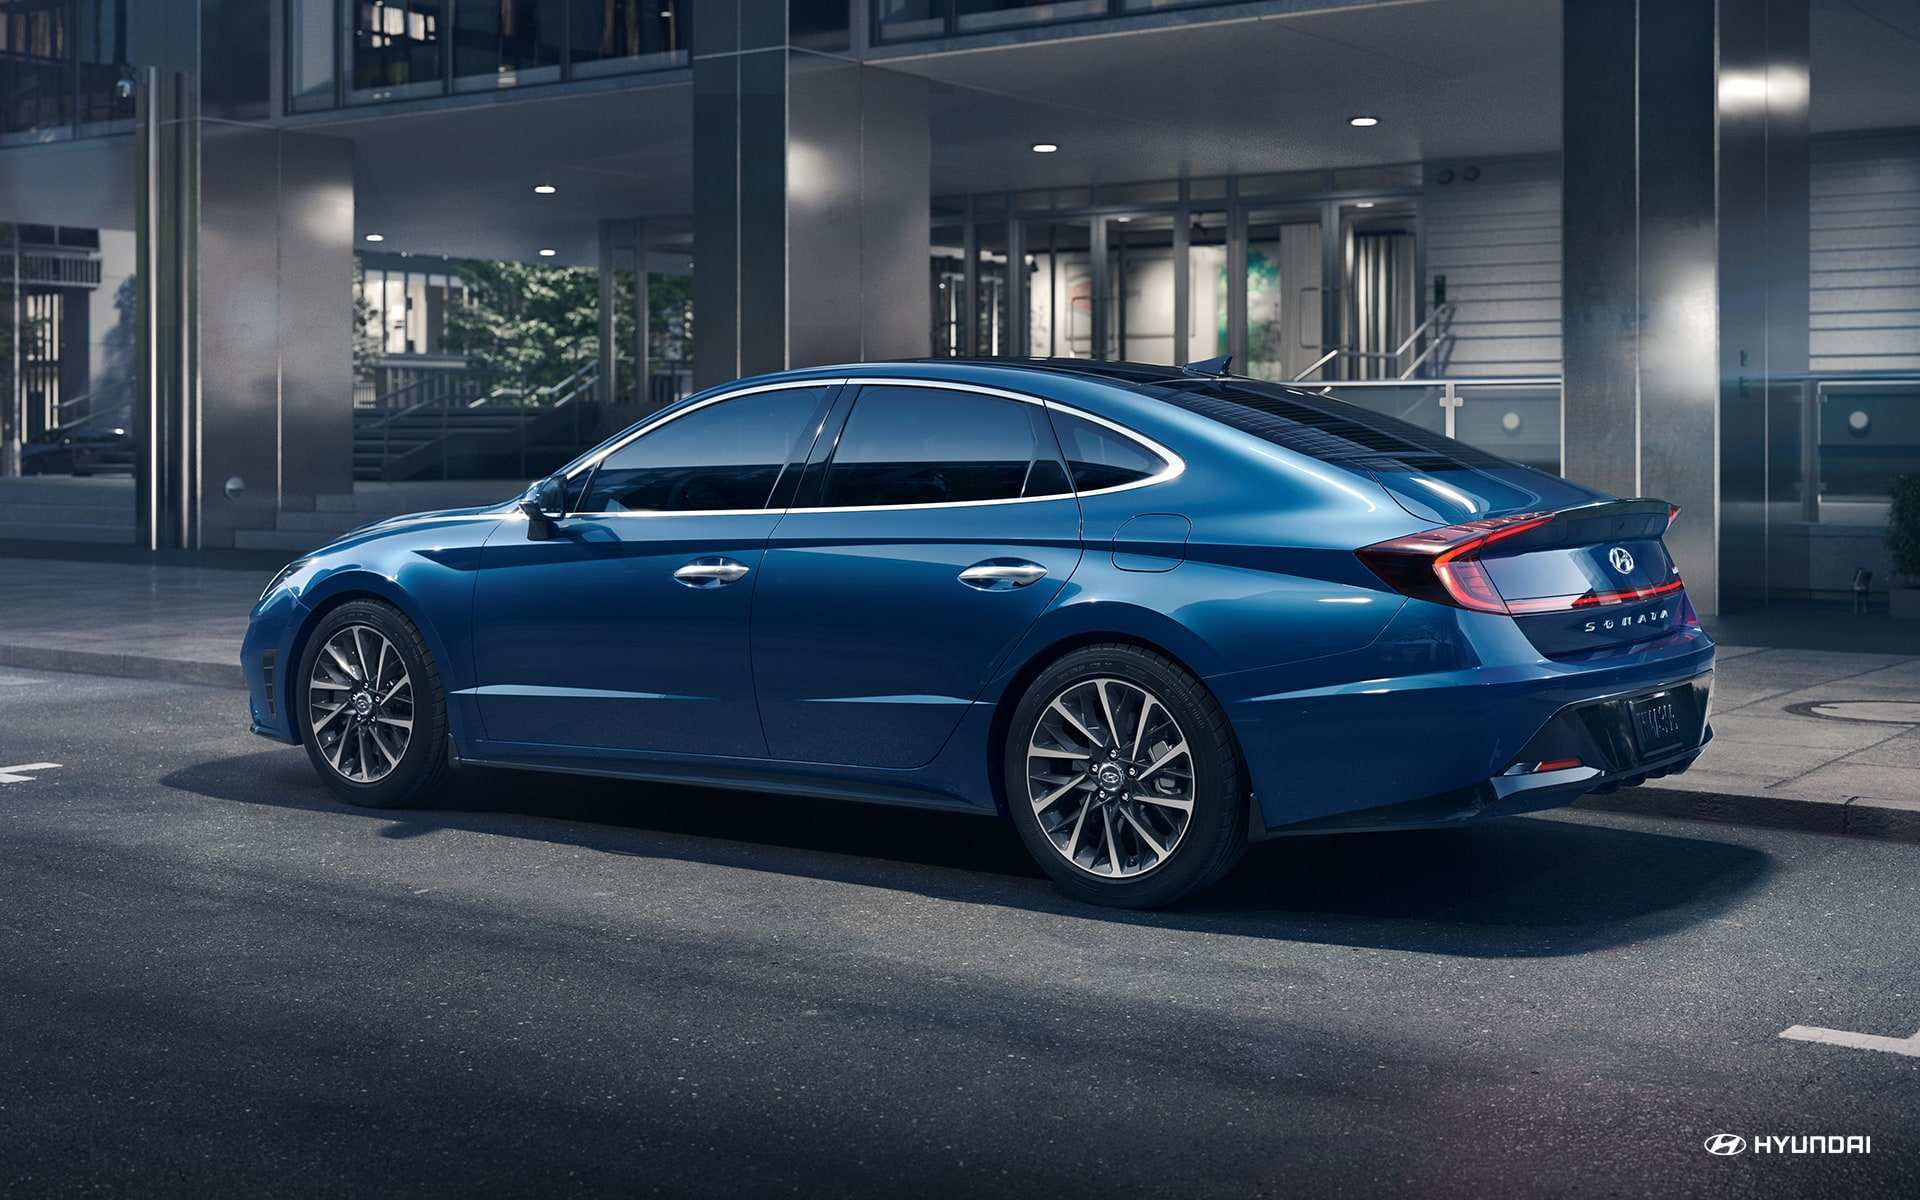 60 The Best Hyundai Sonata 2020 Release Date Configurations